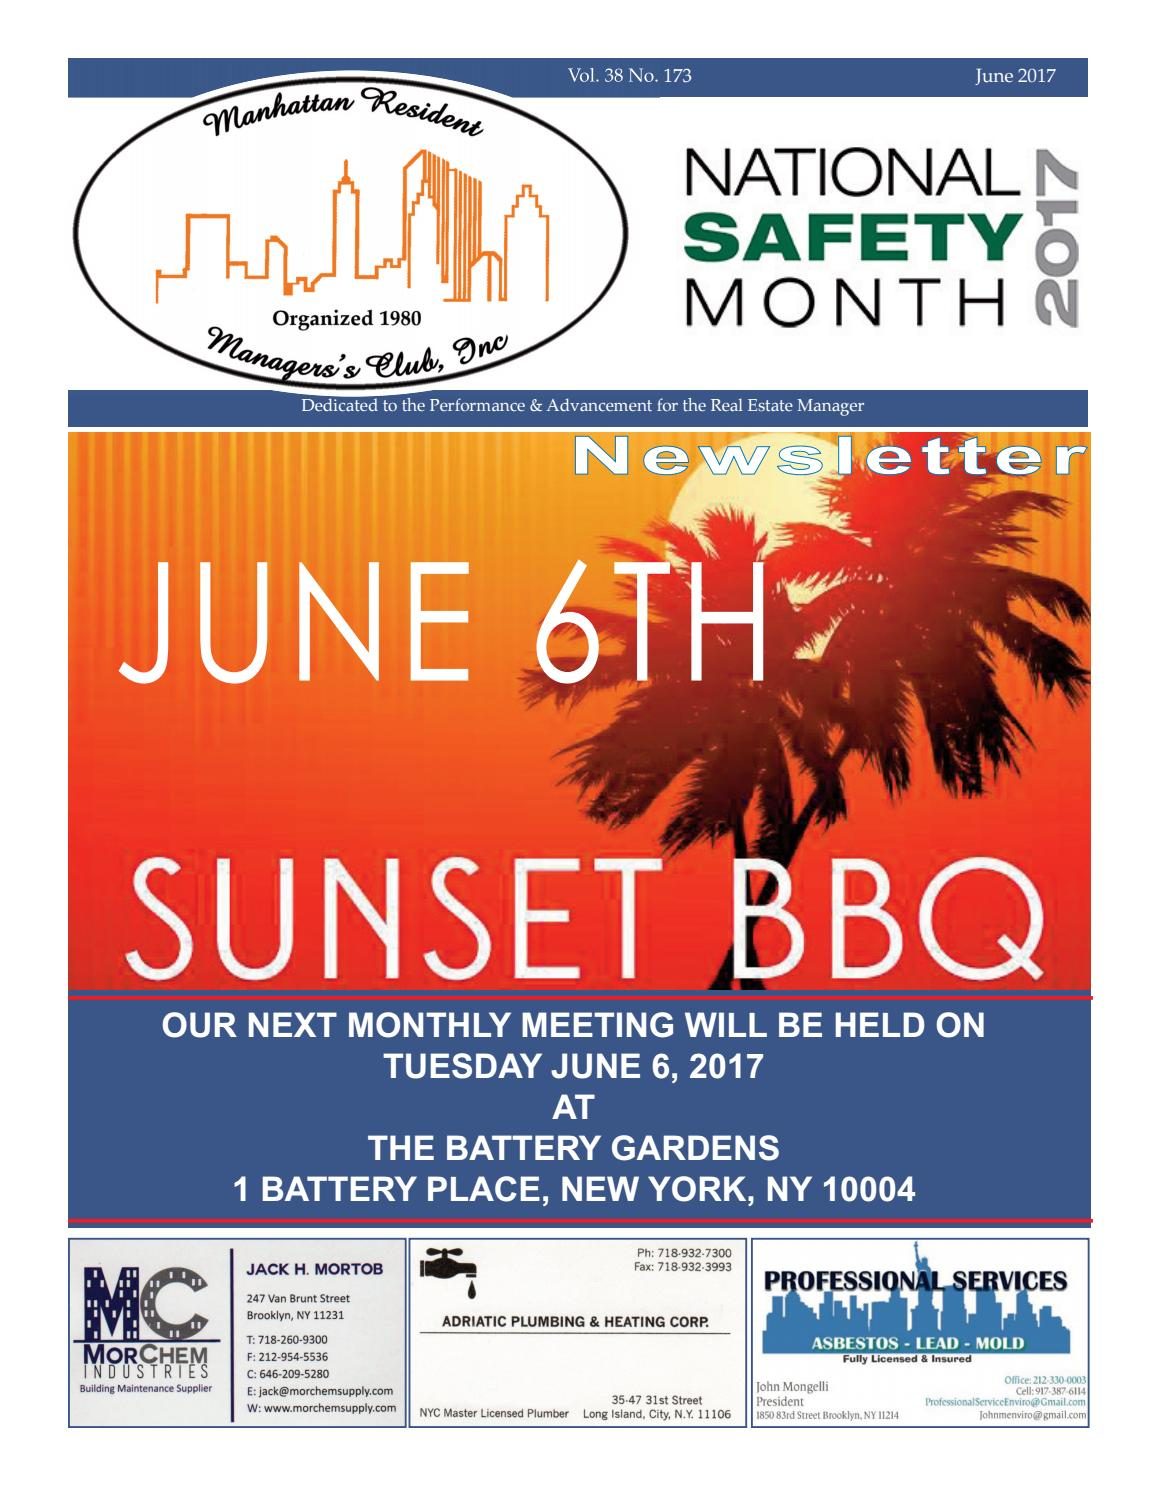 Manhattan Resident Managers Club Newsletter-JUNE 2017 by AMG NY - issuu